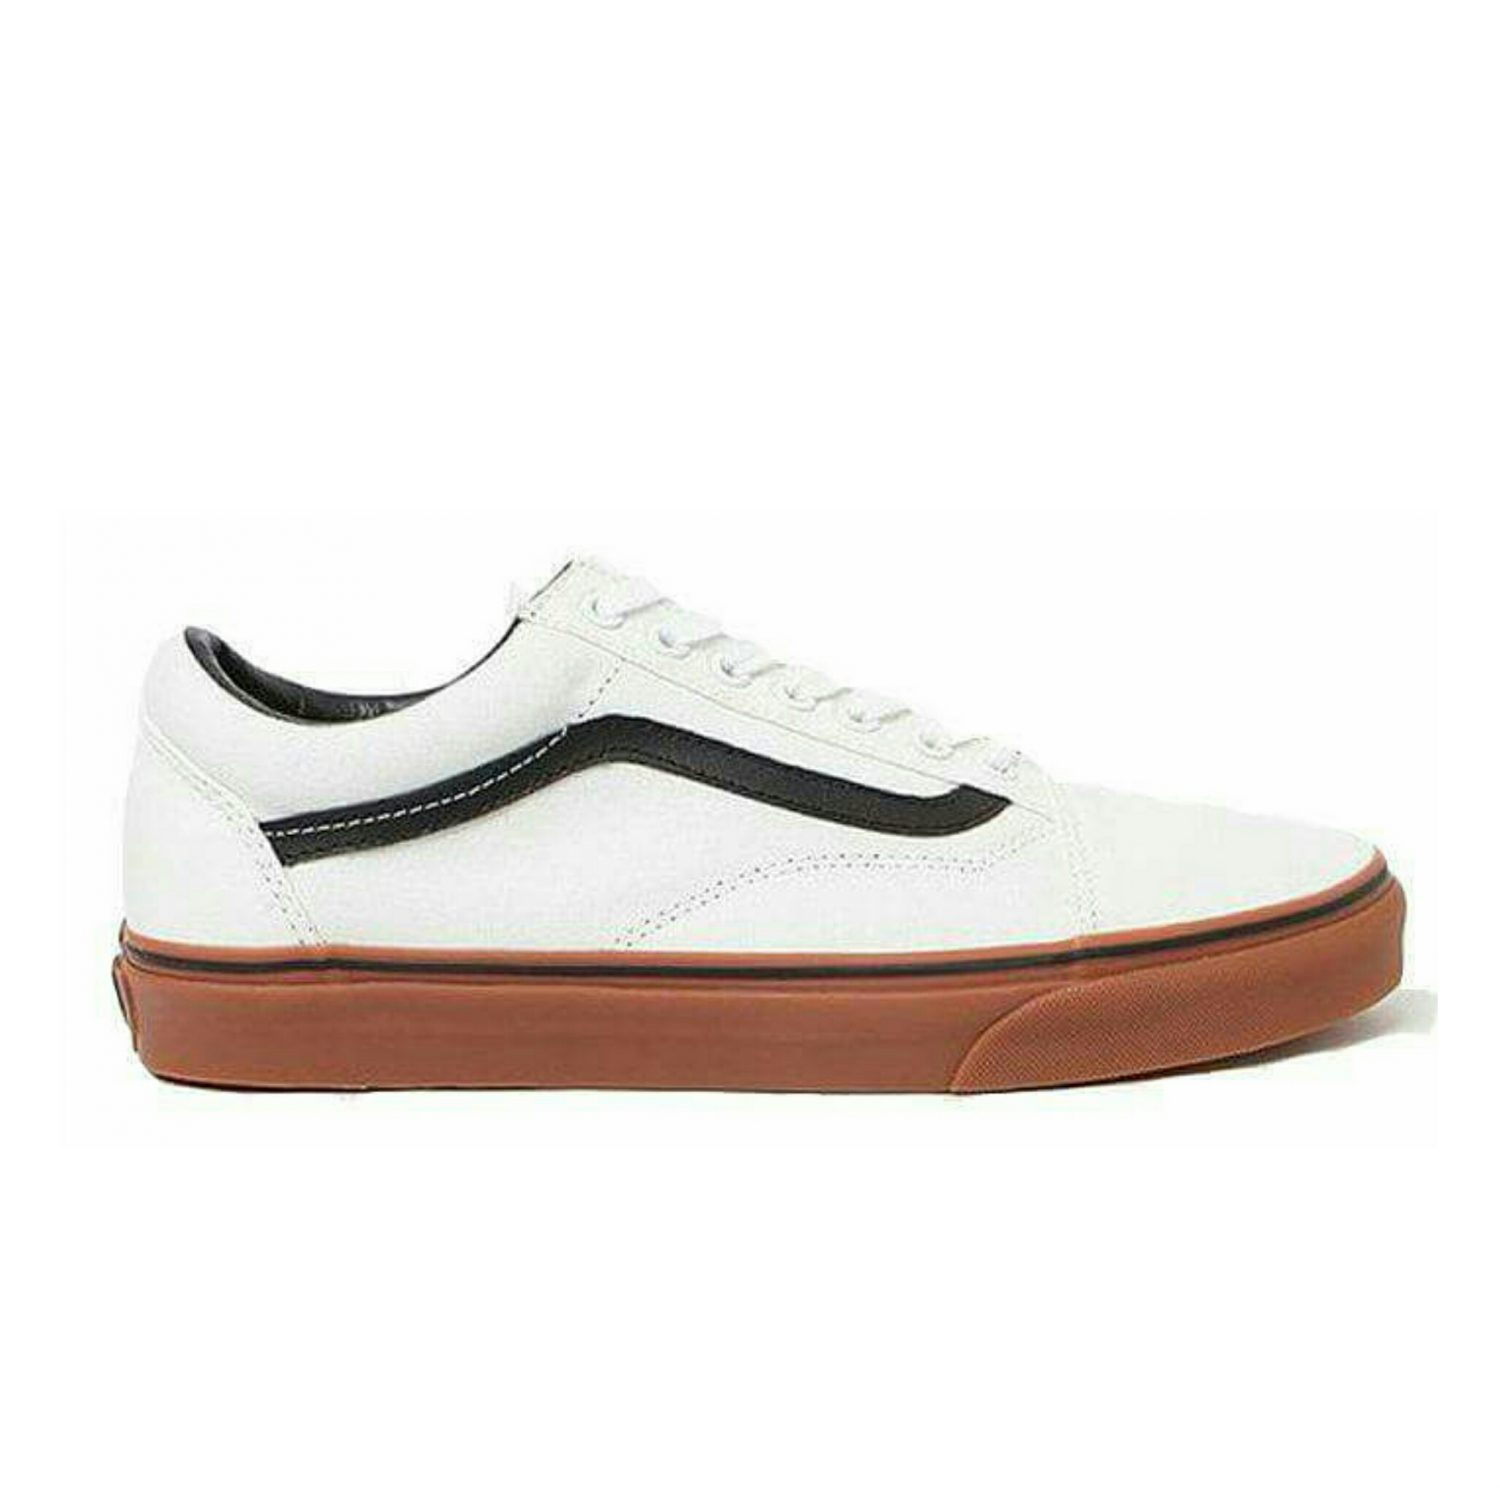 Vans Old Skool White black Gum Sole  Dot Prefect ( Premium Quality)  4a82d540d